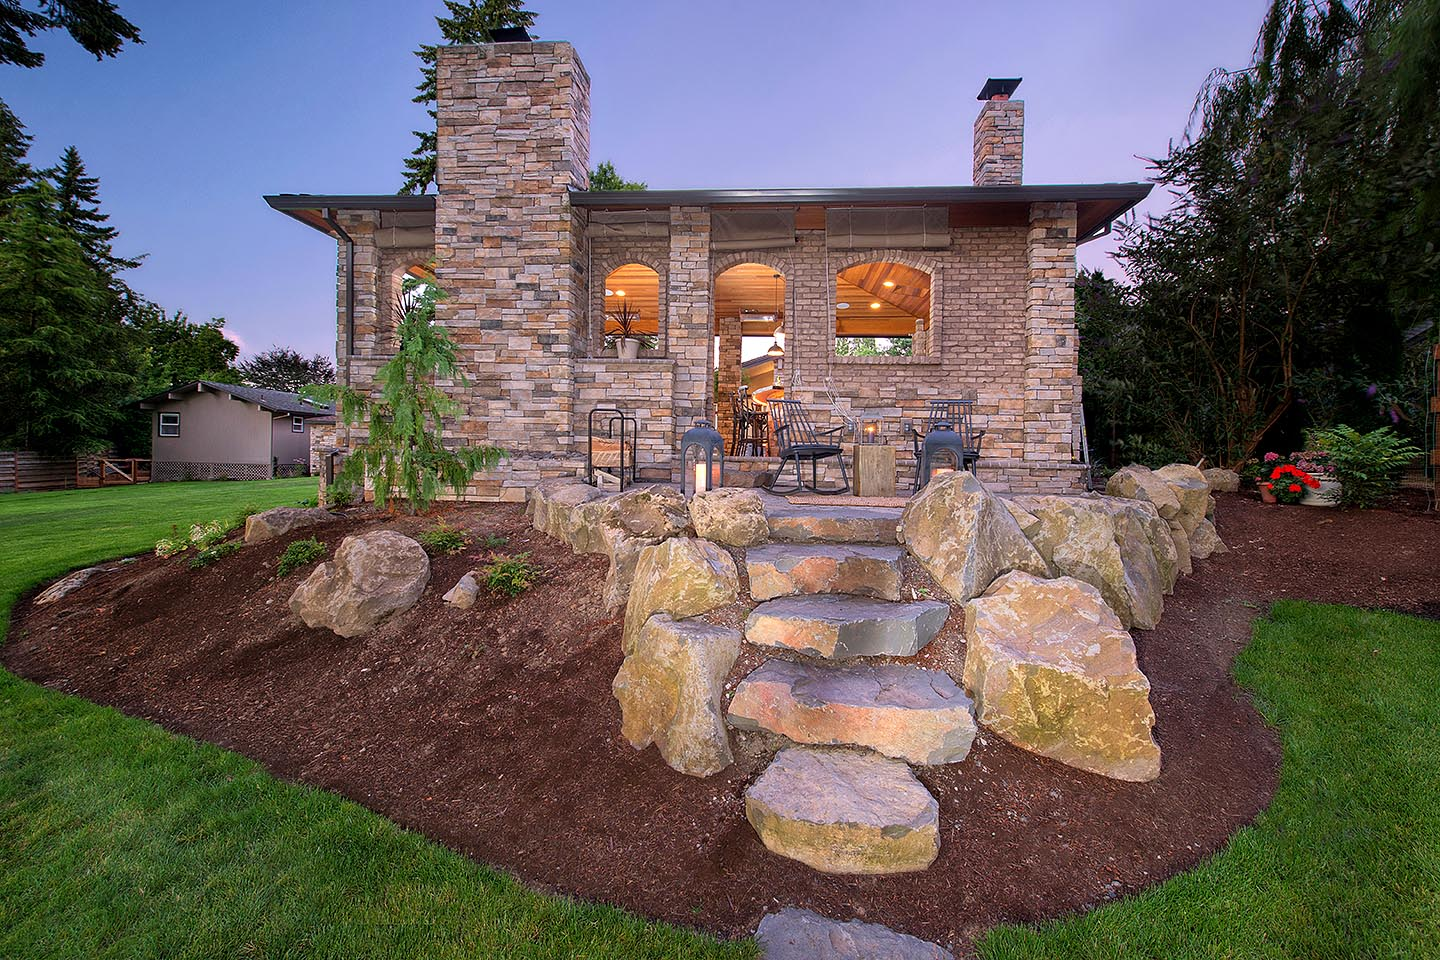 Rear view of gazebo with hardscape patio and boulder steps